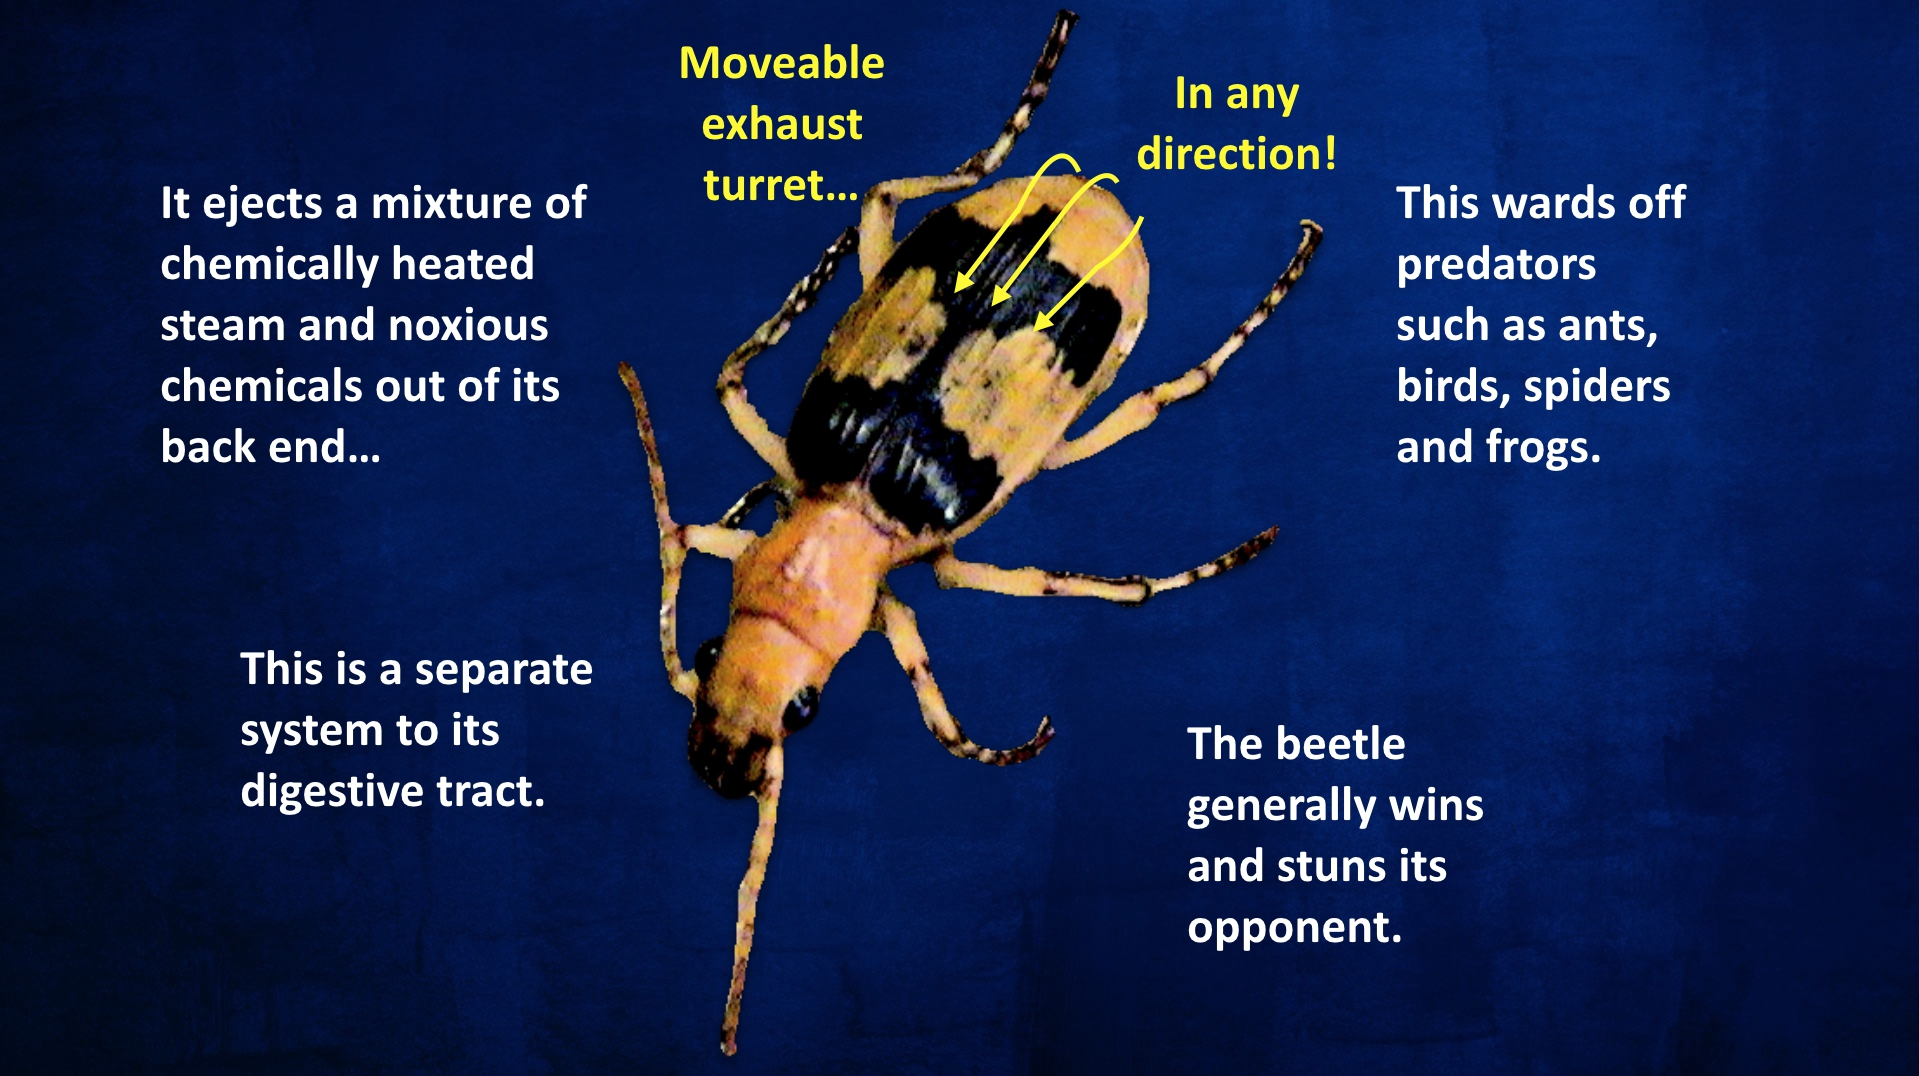 BBeetle description with Turret